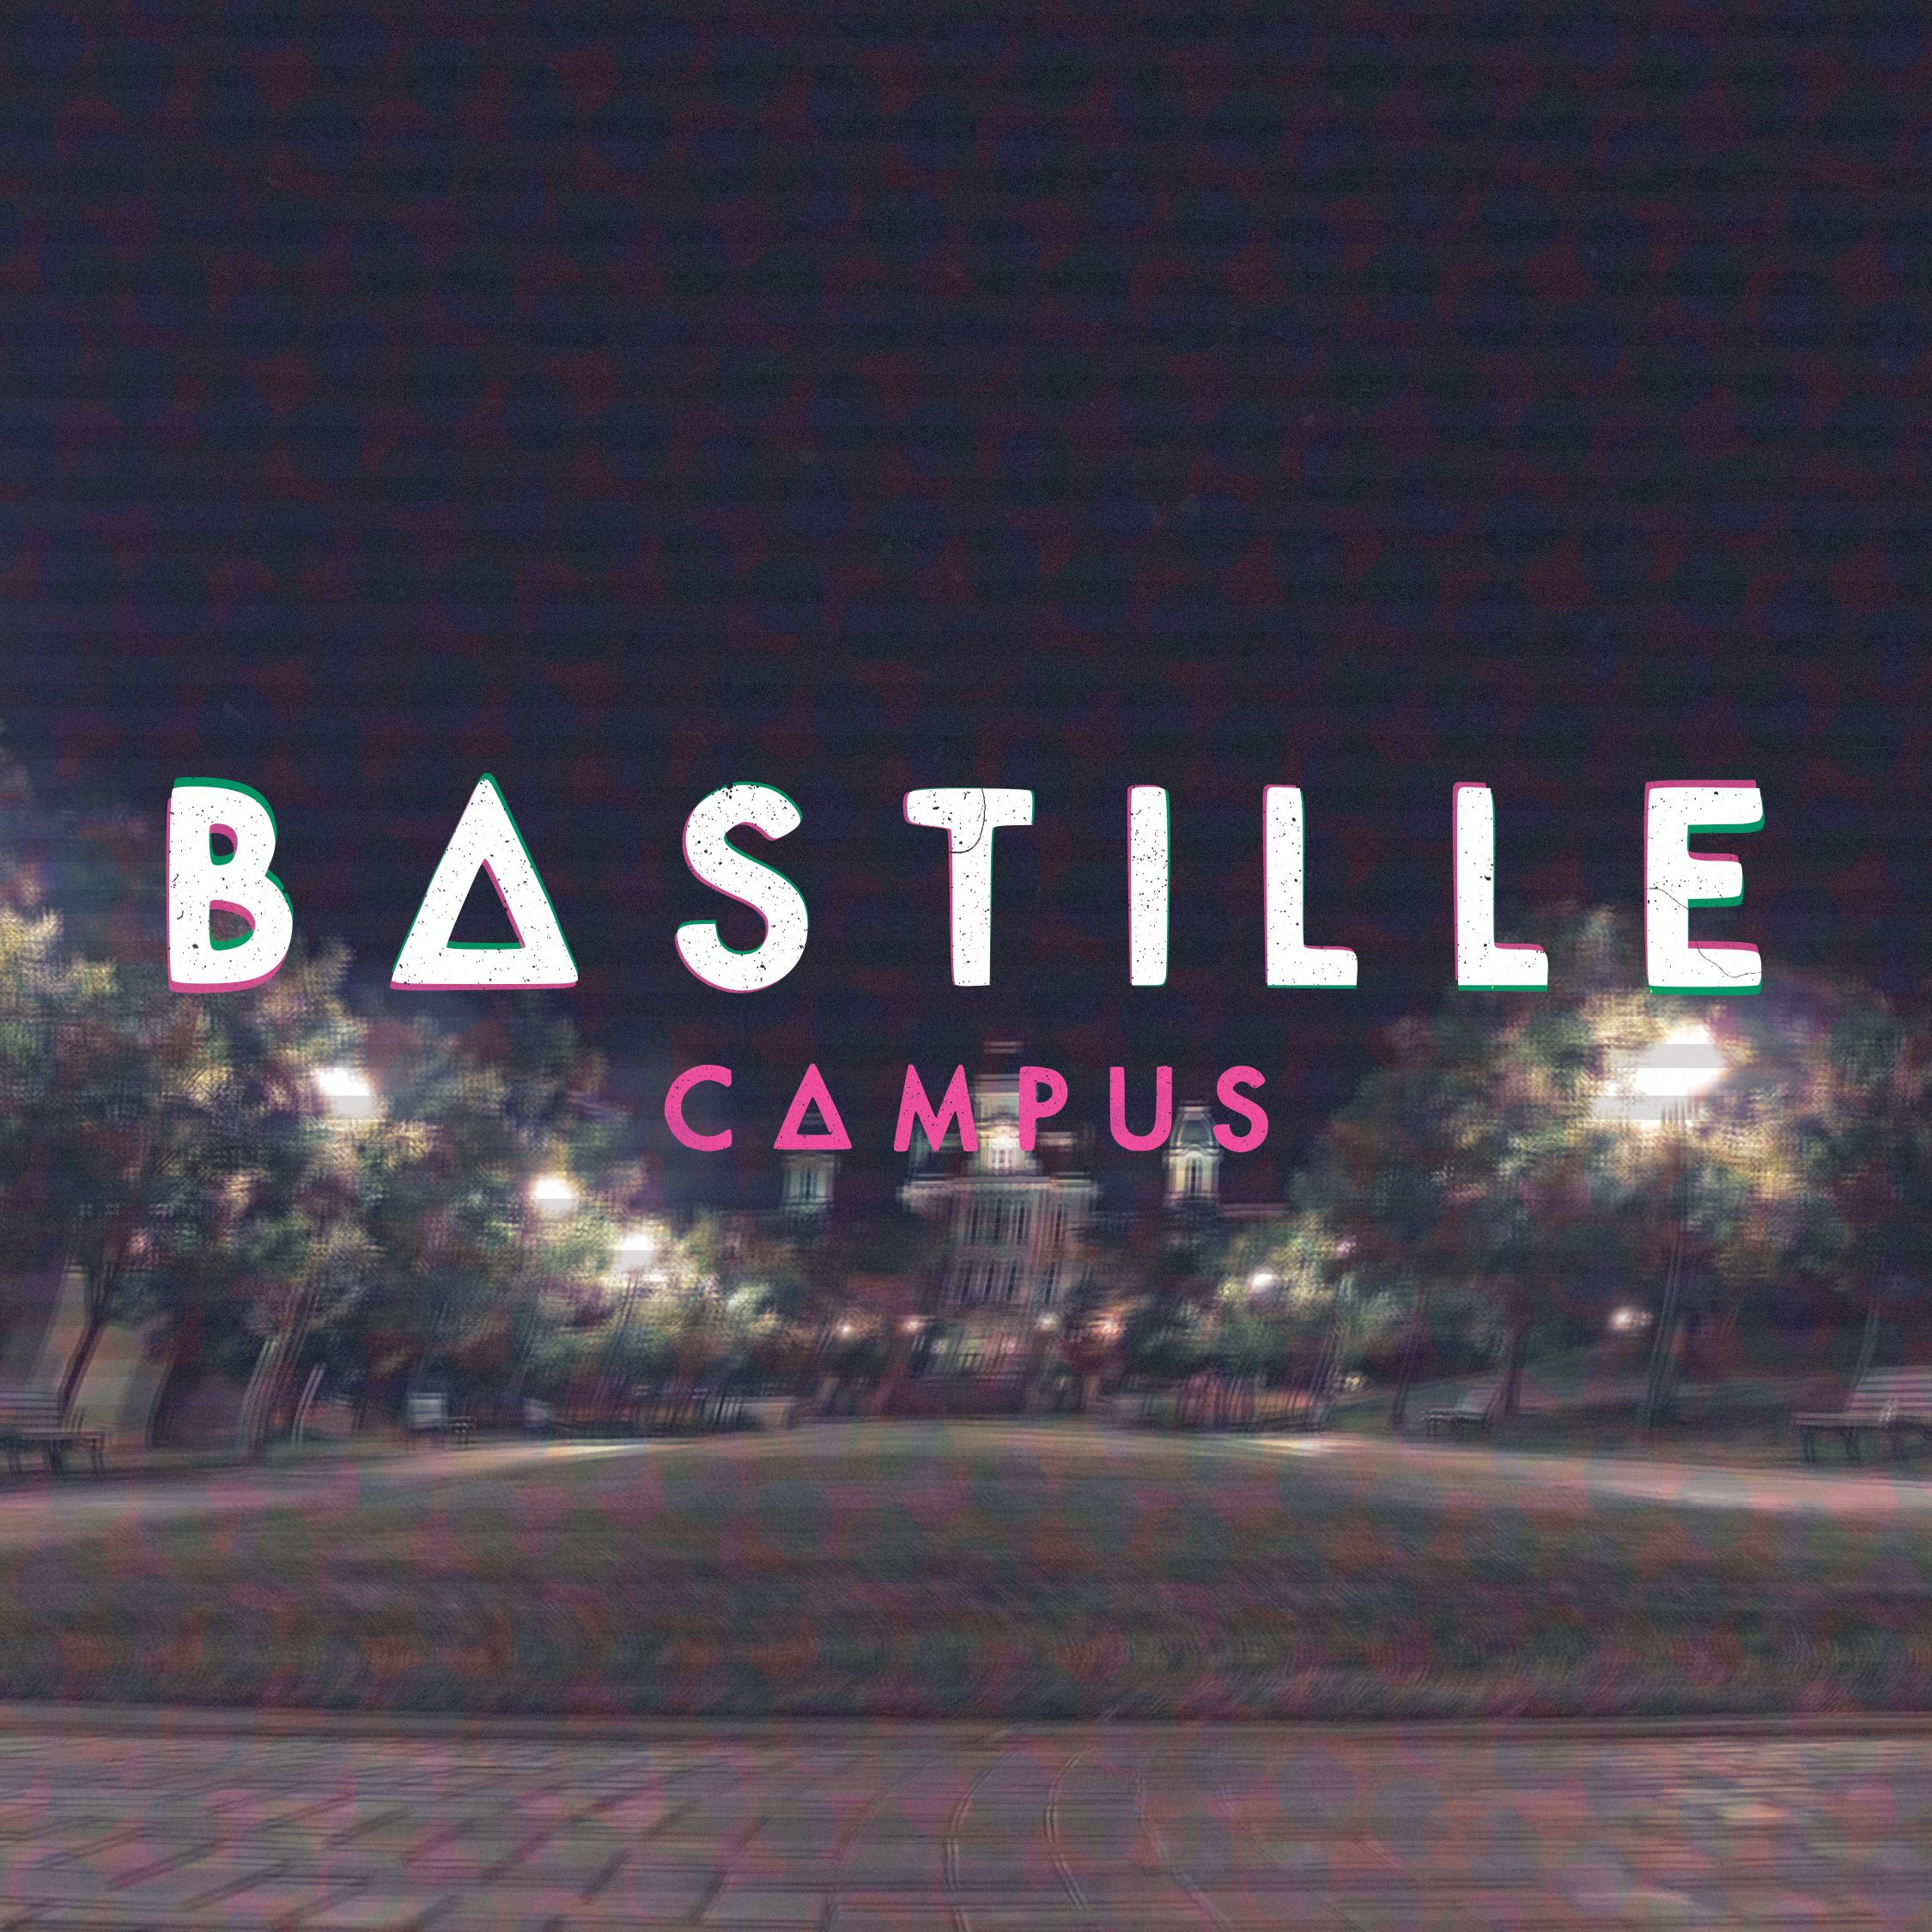 #bastille Album Artwork Unreleased Single Campus